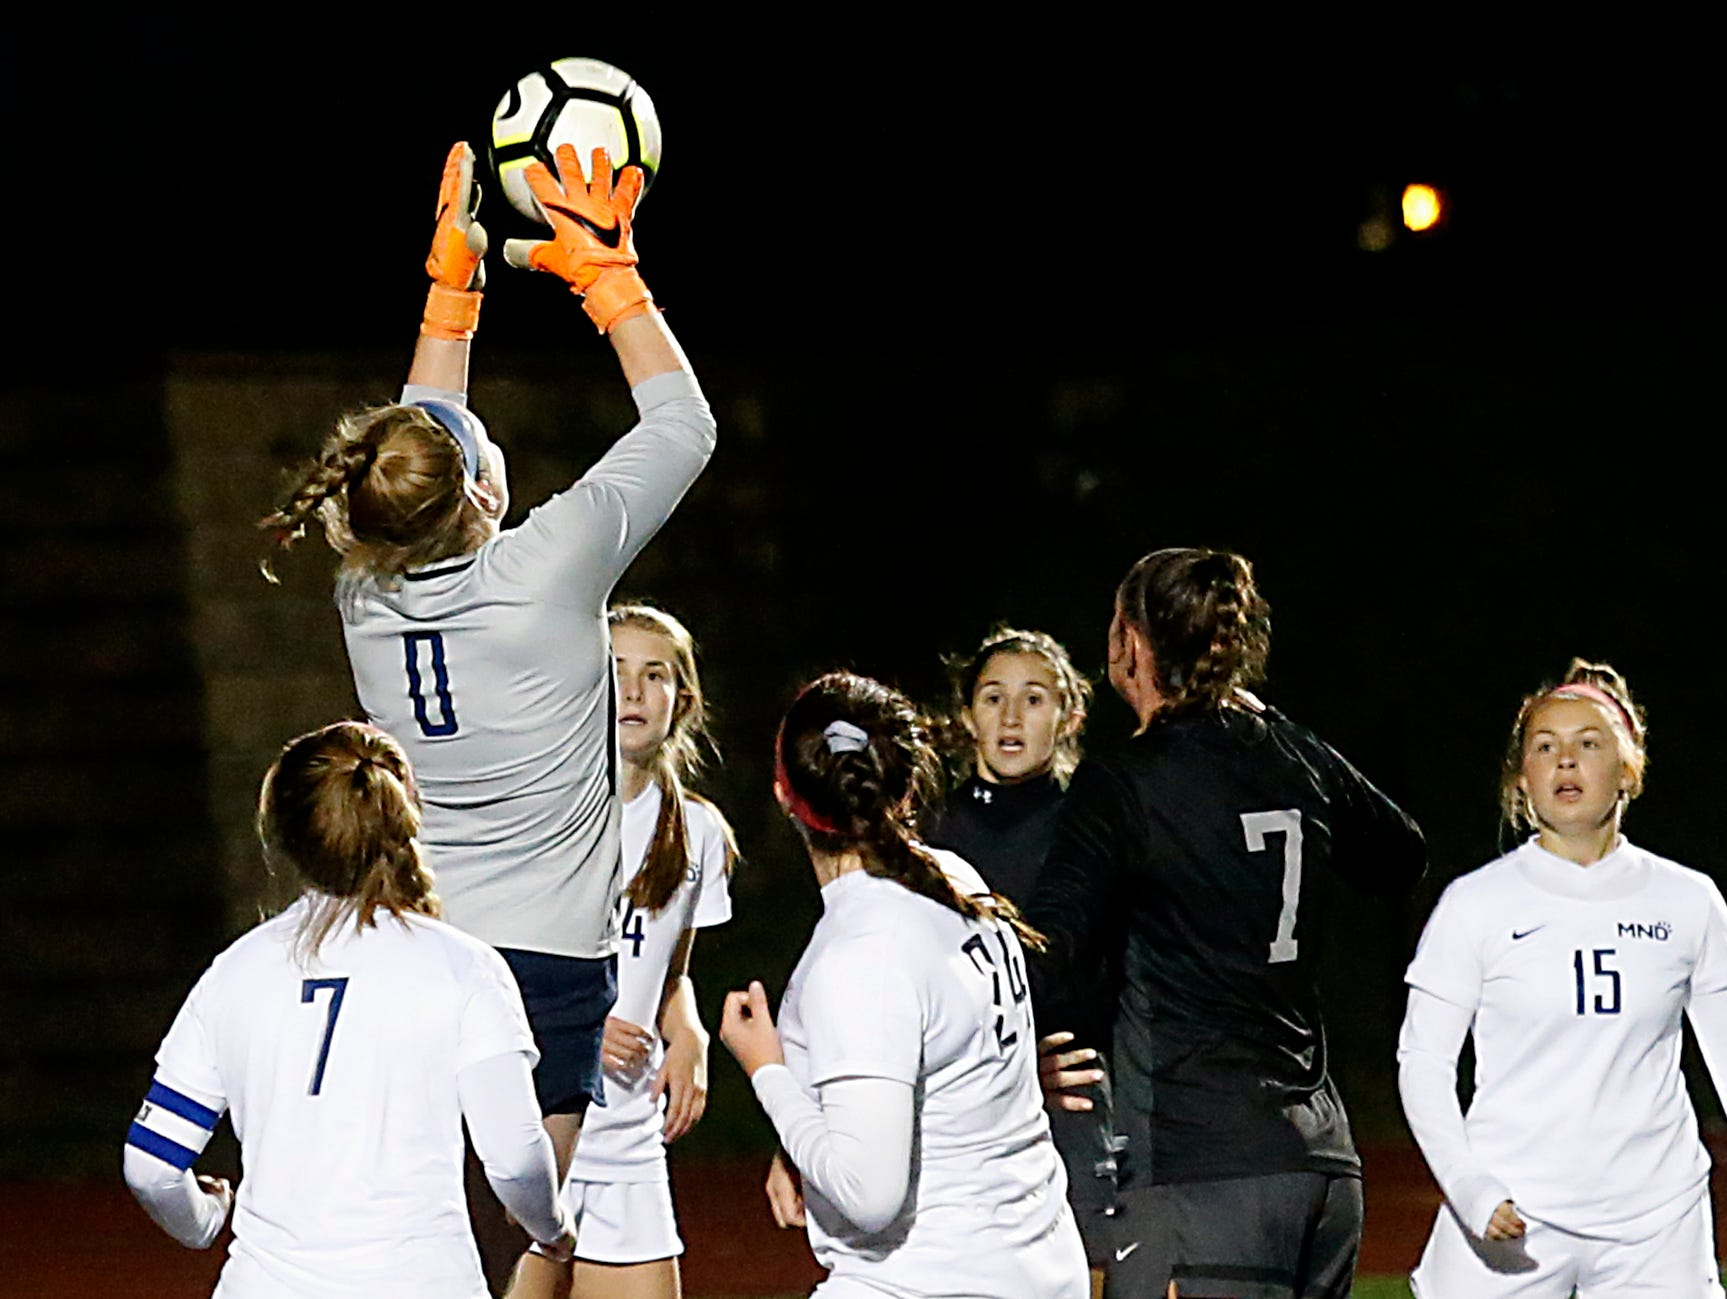 Mount Notre Dame keeper Becky Moss grabs a Lakota East corner kick during their Division I Southwest district final soccer game at Walnut Hills in Cincinnati Saturday, Oct. 27, 2018.